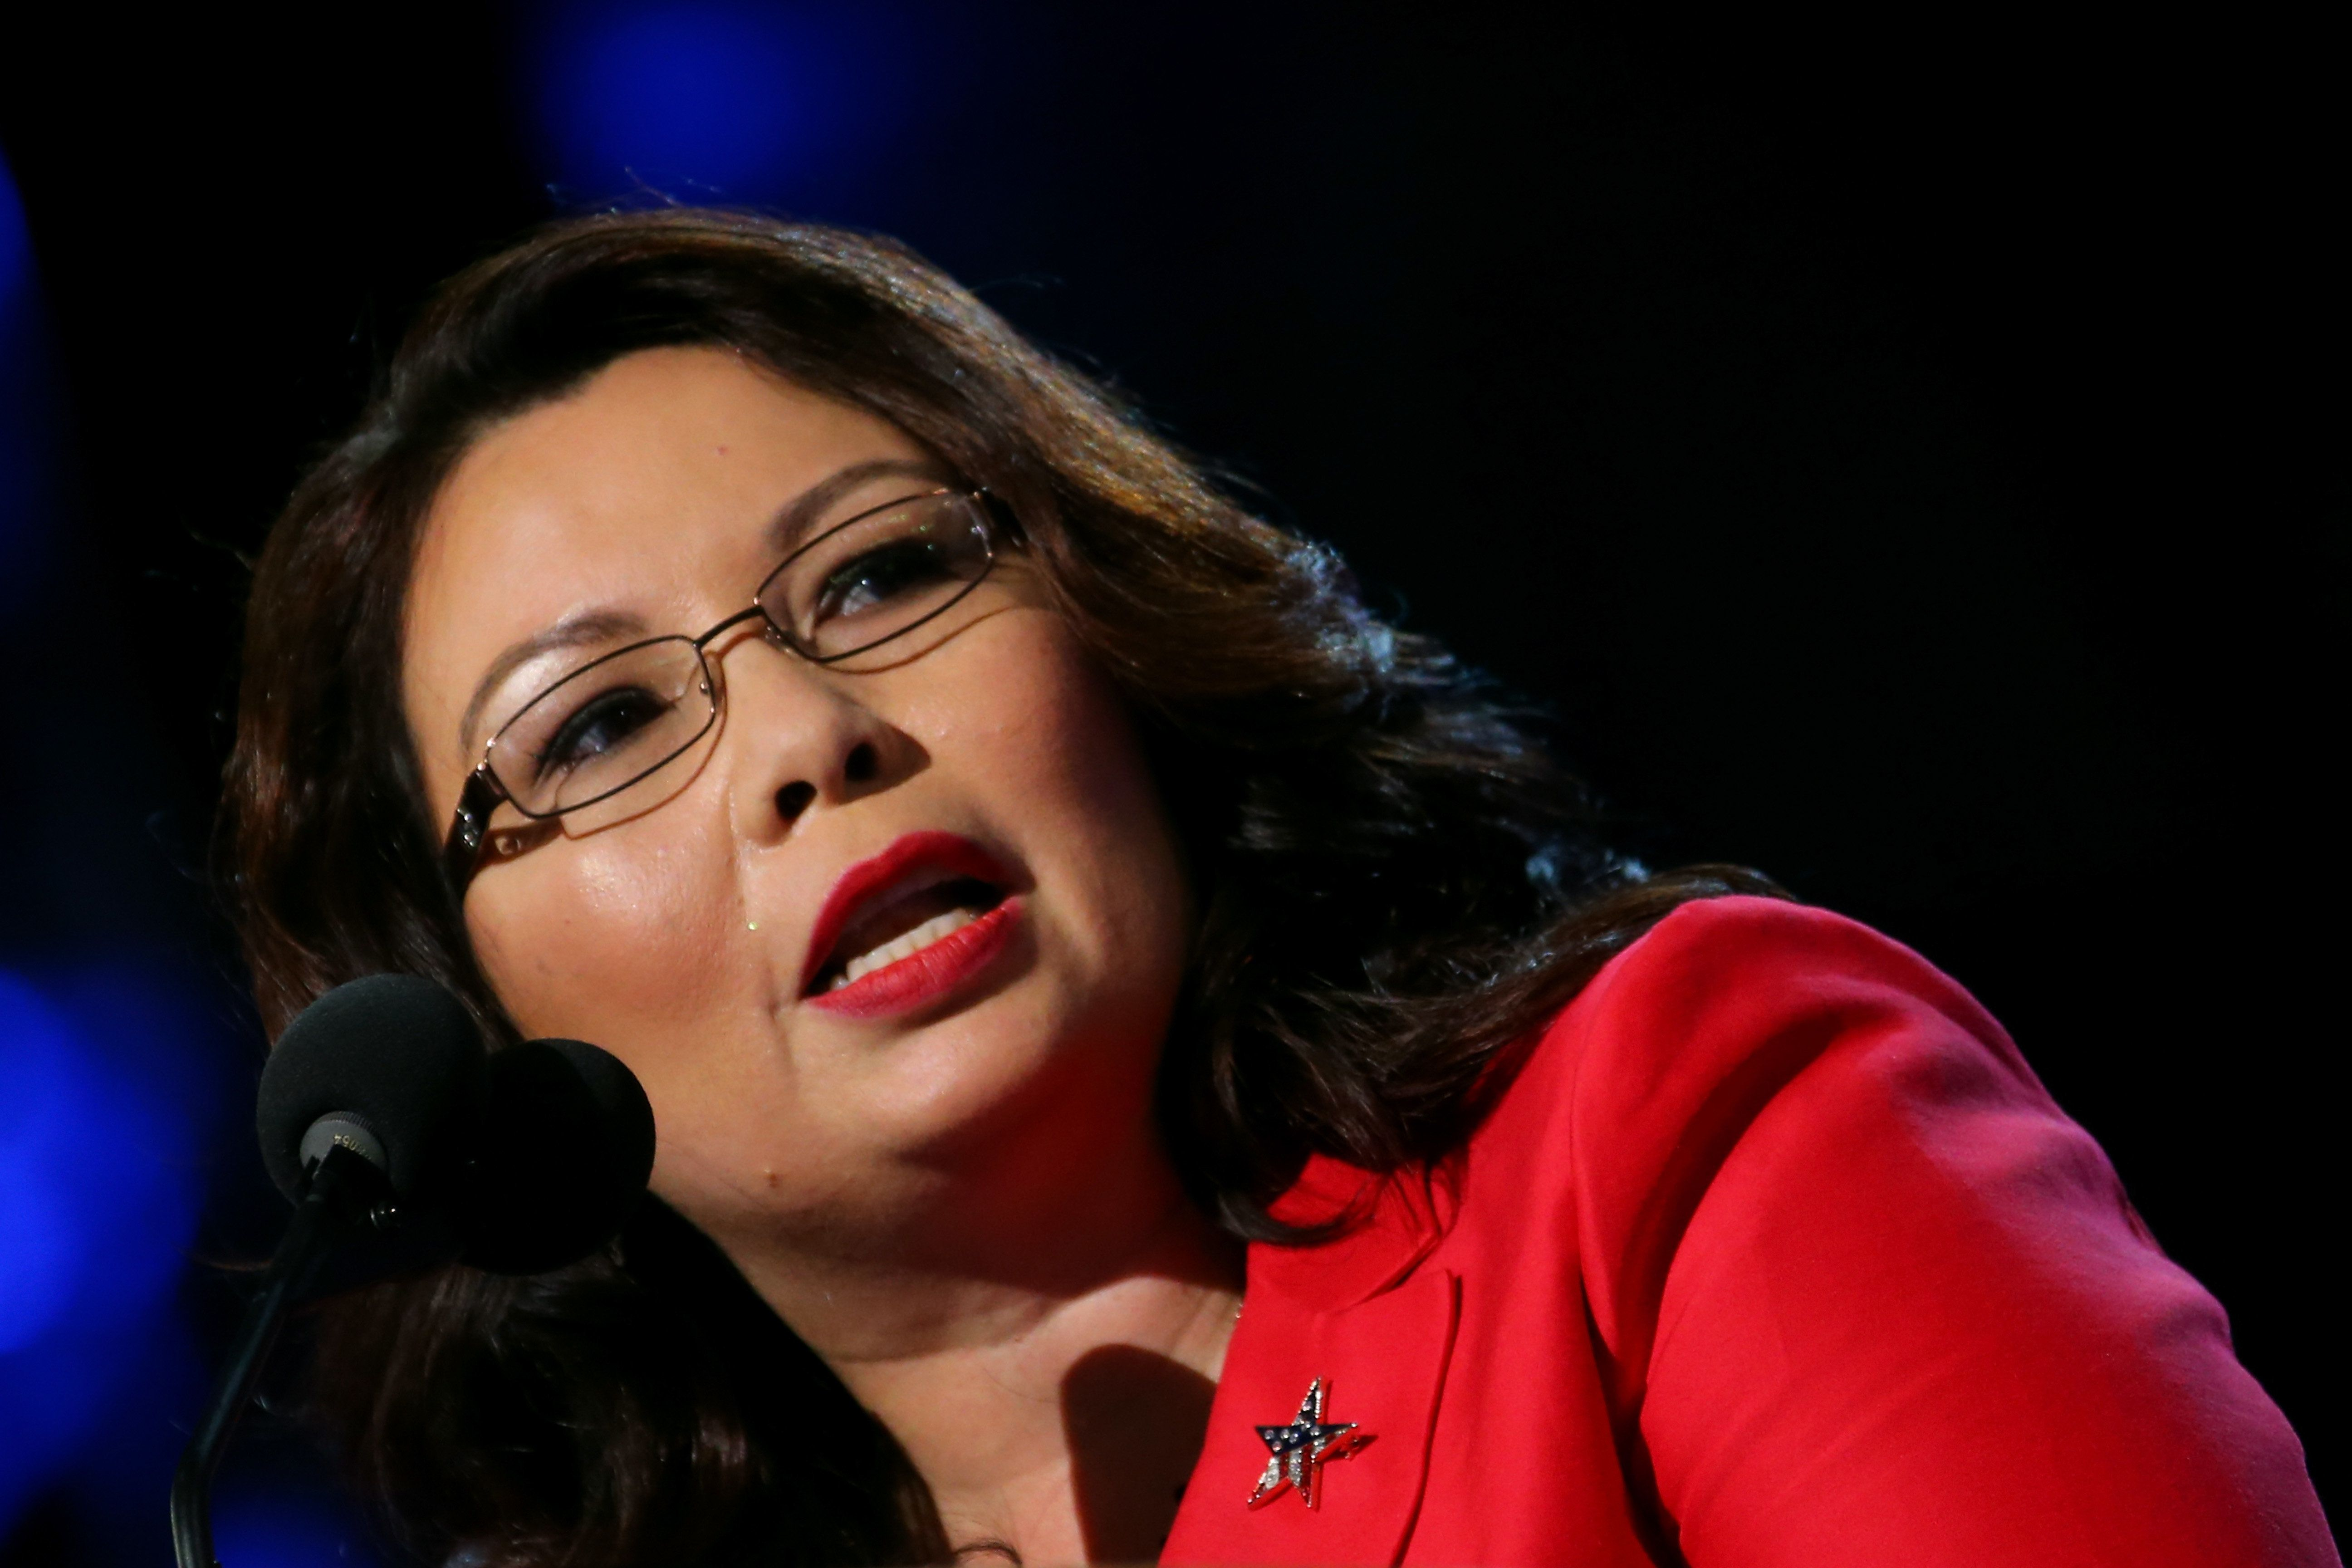 CHARLOTTE, NC - SEPTEMBER 04:  Illinois nominee for Congress Tammy Duckworth speaks during day one of the Democratic National Convention at Time Warner Cable Arena on September 4, 2012 in Charlotte, North Carolina. The DNC that will run through September 7, will nominate U.S. President Barack Obama as the Democratic presidential candidate.  (Photo by Joe Raedle/Getty Images)